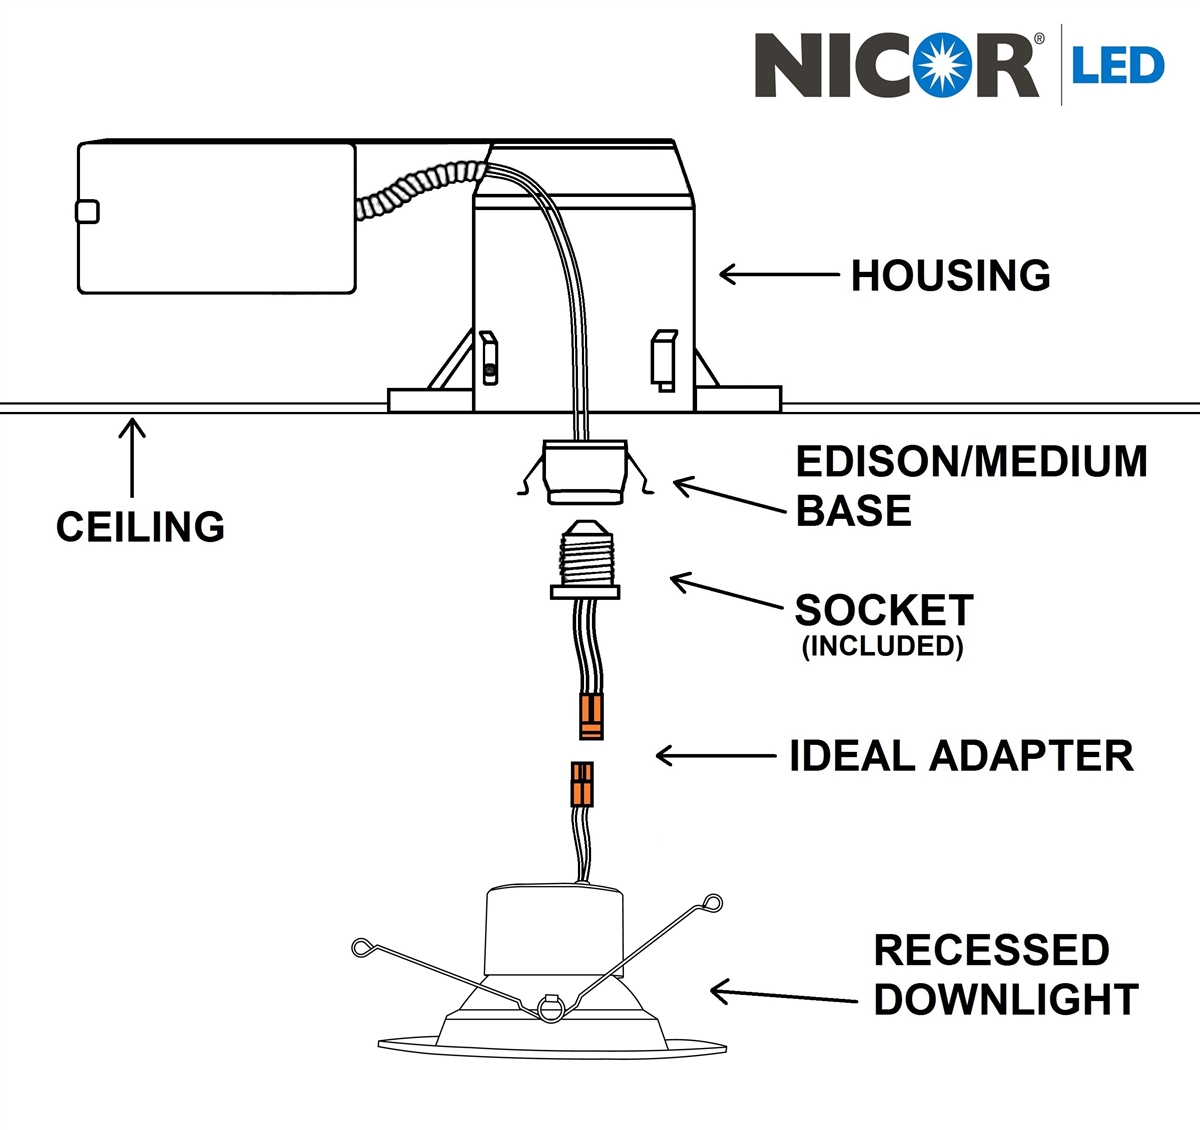 hight resolution of nicor exit sign wiring diagram completed wiring diagramsnicor dcr56 800lm dimmable recessed led downlight elevator wiring